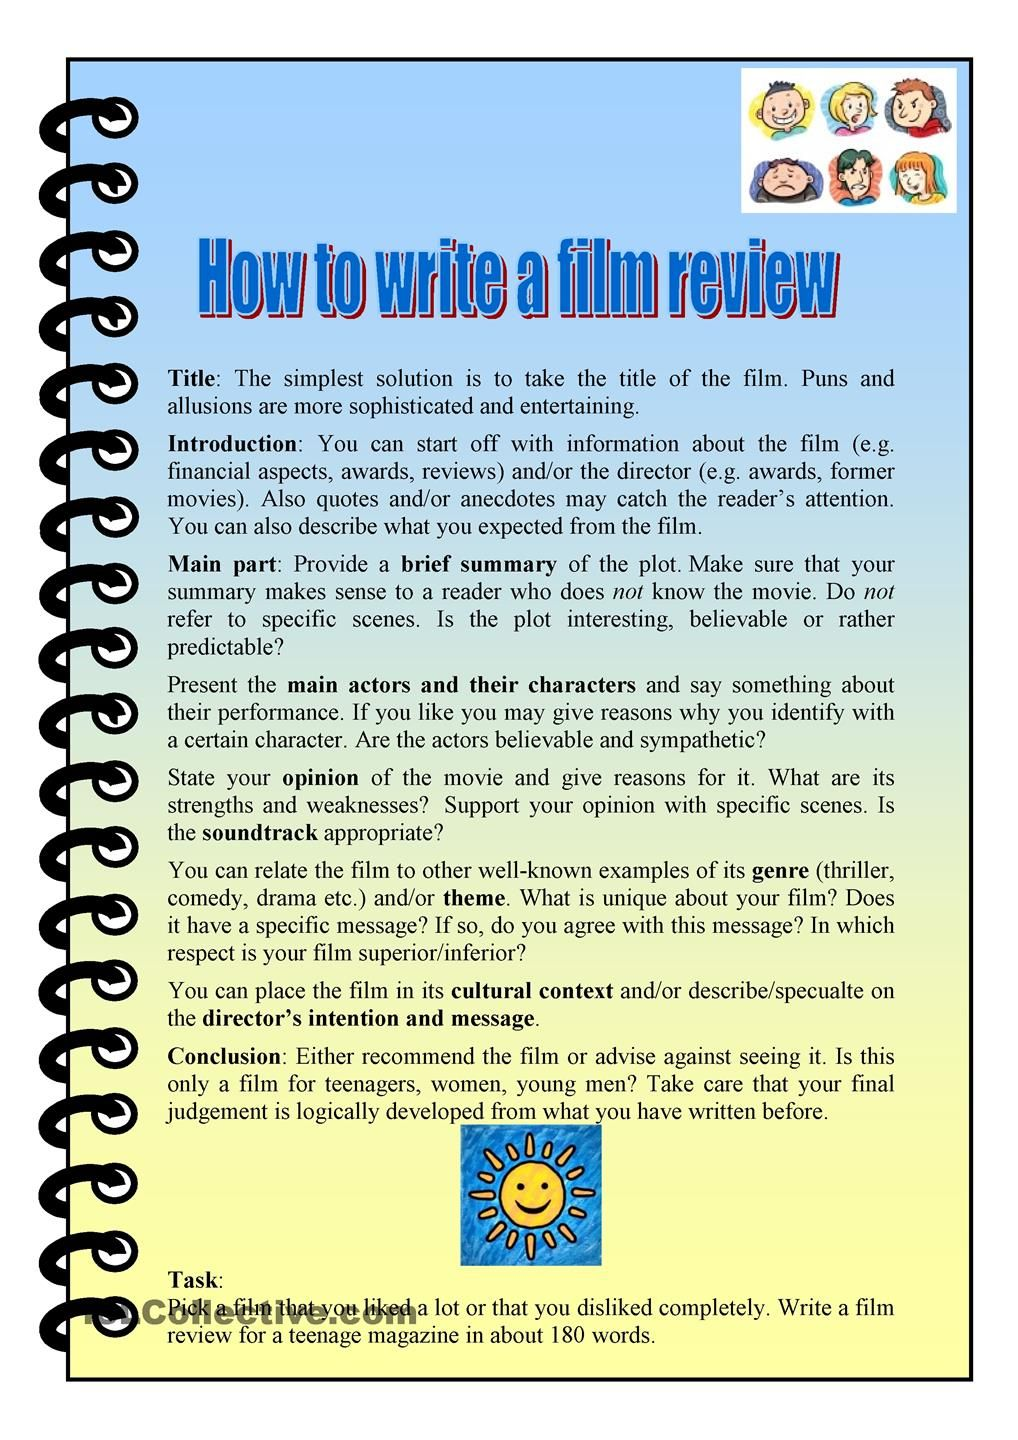 a review of a film essay generator